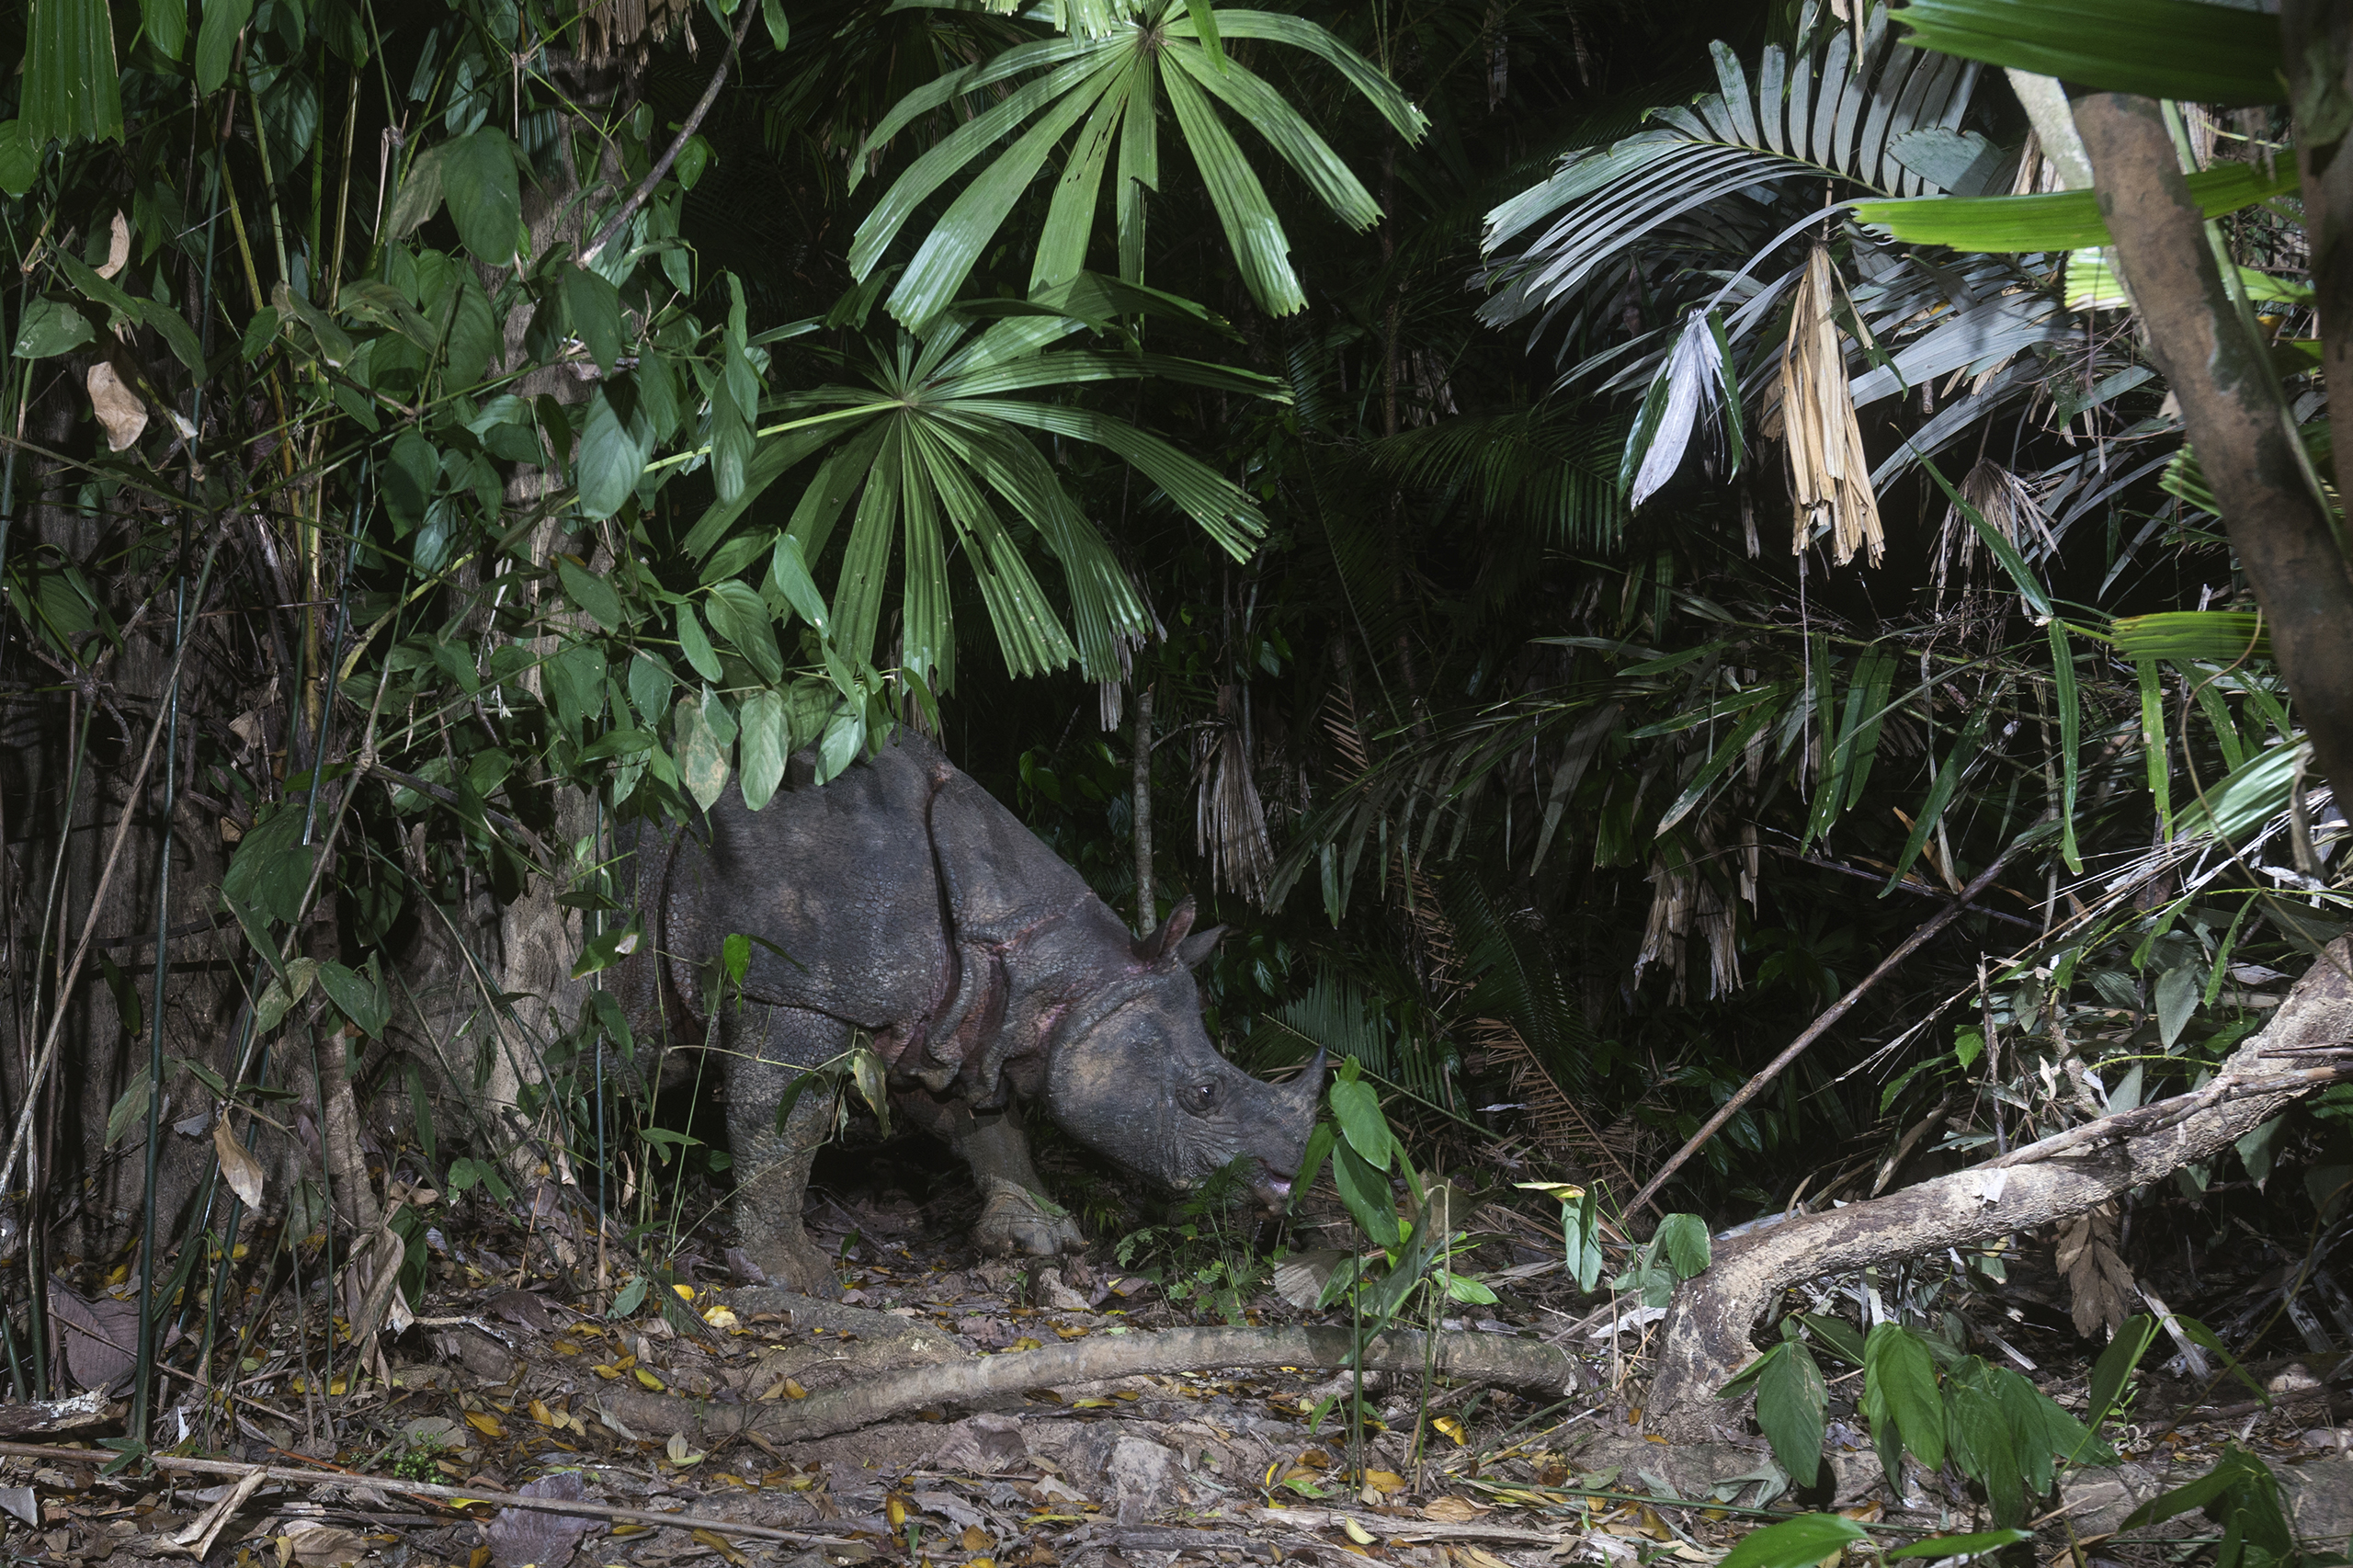 Javan Rhinoceros, Ujung Kulon National Park, Indonesia. After a subspecies in Vietnam was wiped out due to poaching, the entire population, about 60 individuals, of these animals can be found in one Indonesian park.  Because of their low numbers, they are especially vulnerable to natural disasters, disease, and inbreeding.